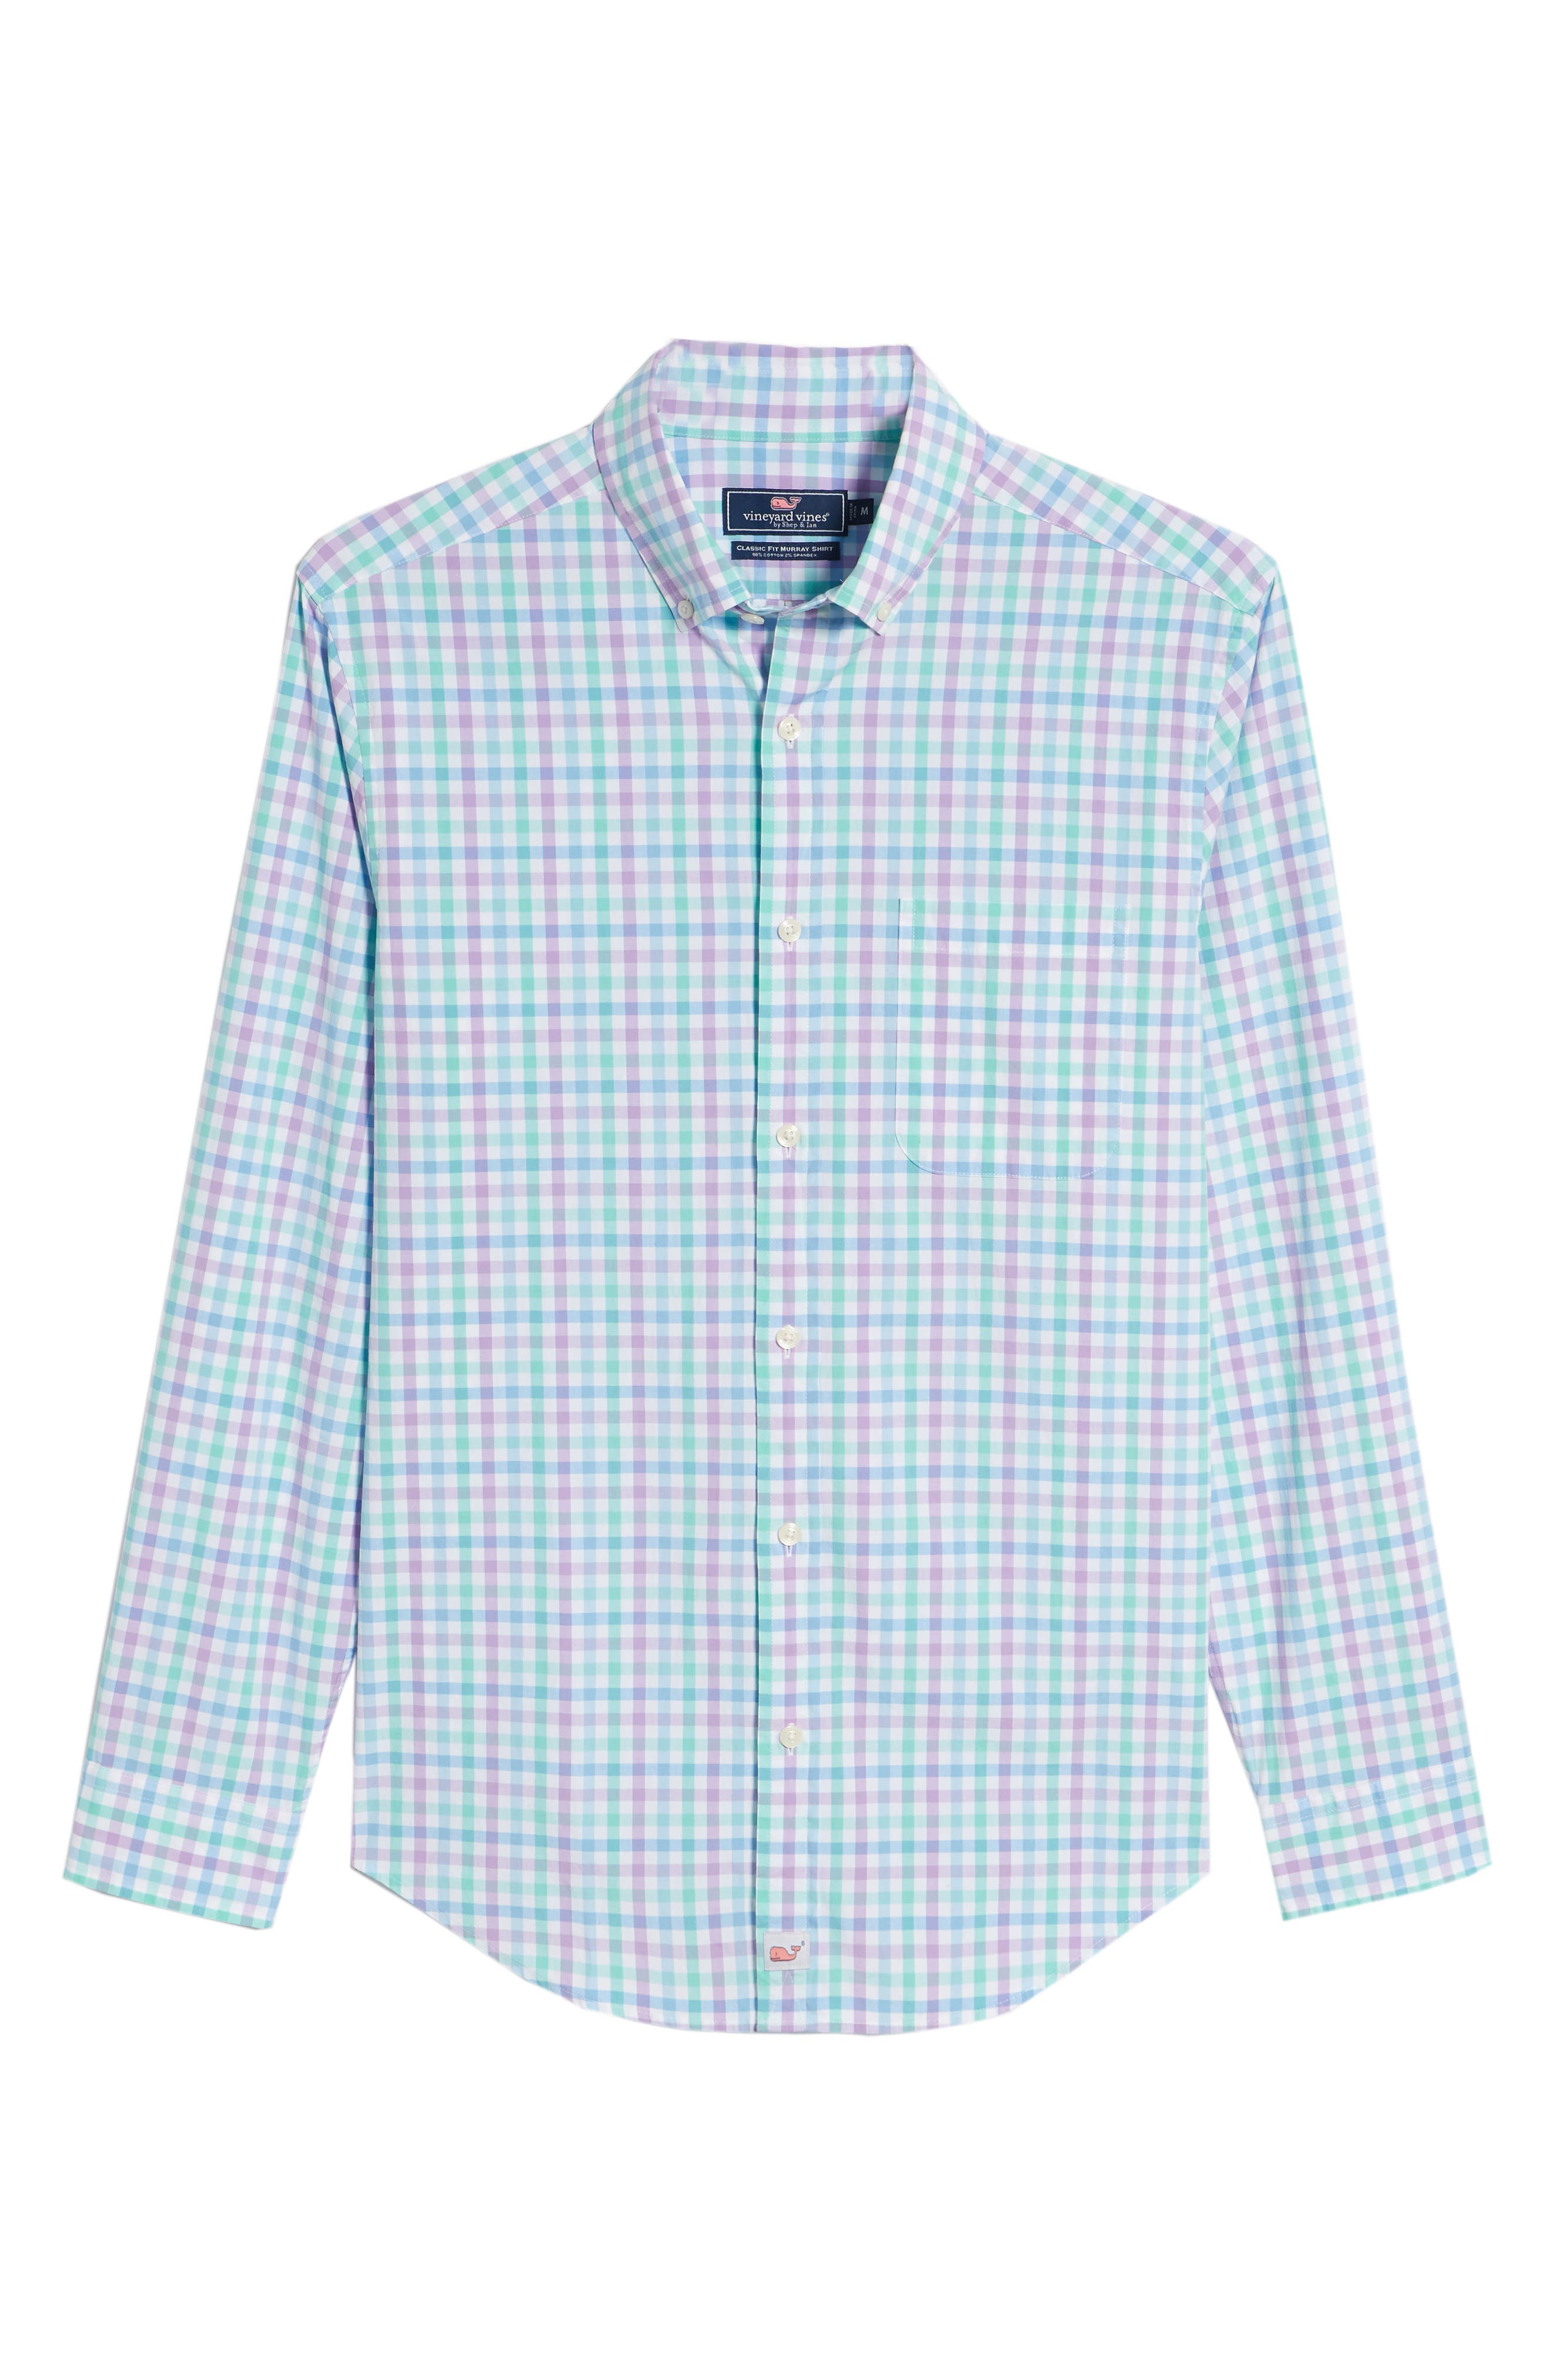 Murray Classic Fit Stretch Check Sport Shirt,                             Alternate thumbnail 6, color,                             Sea Urchin